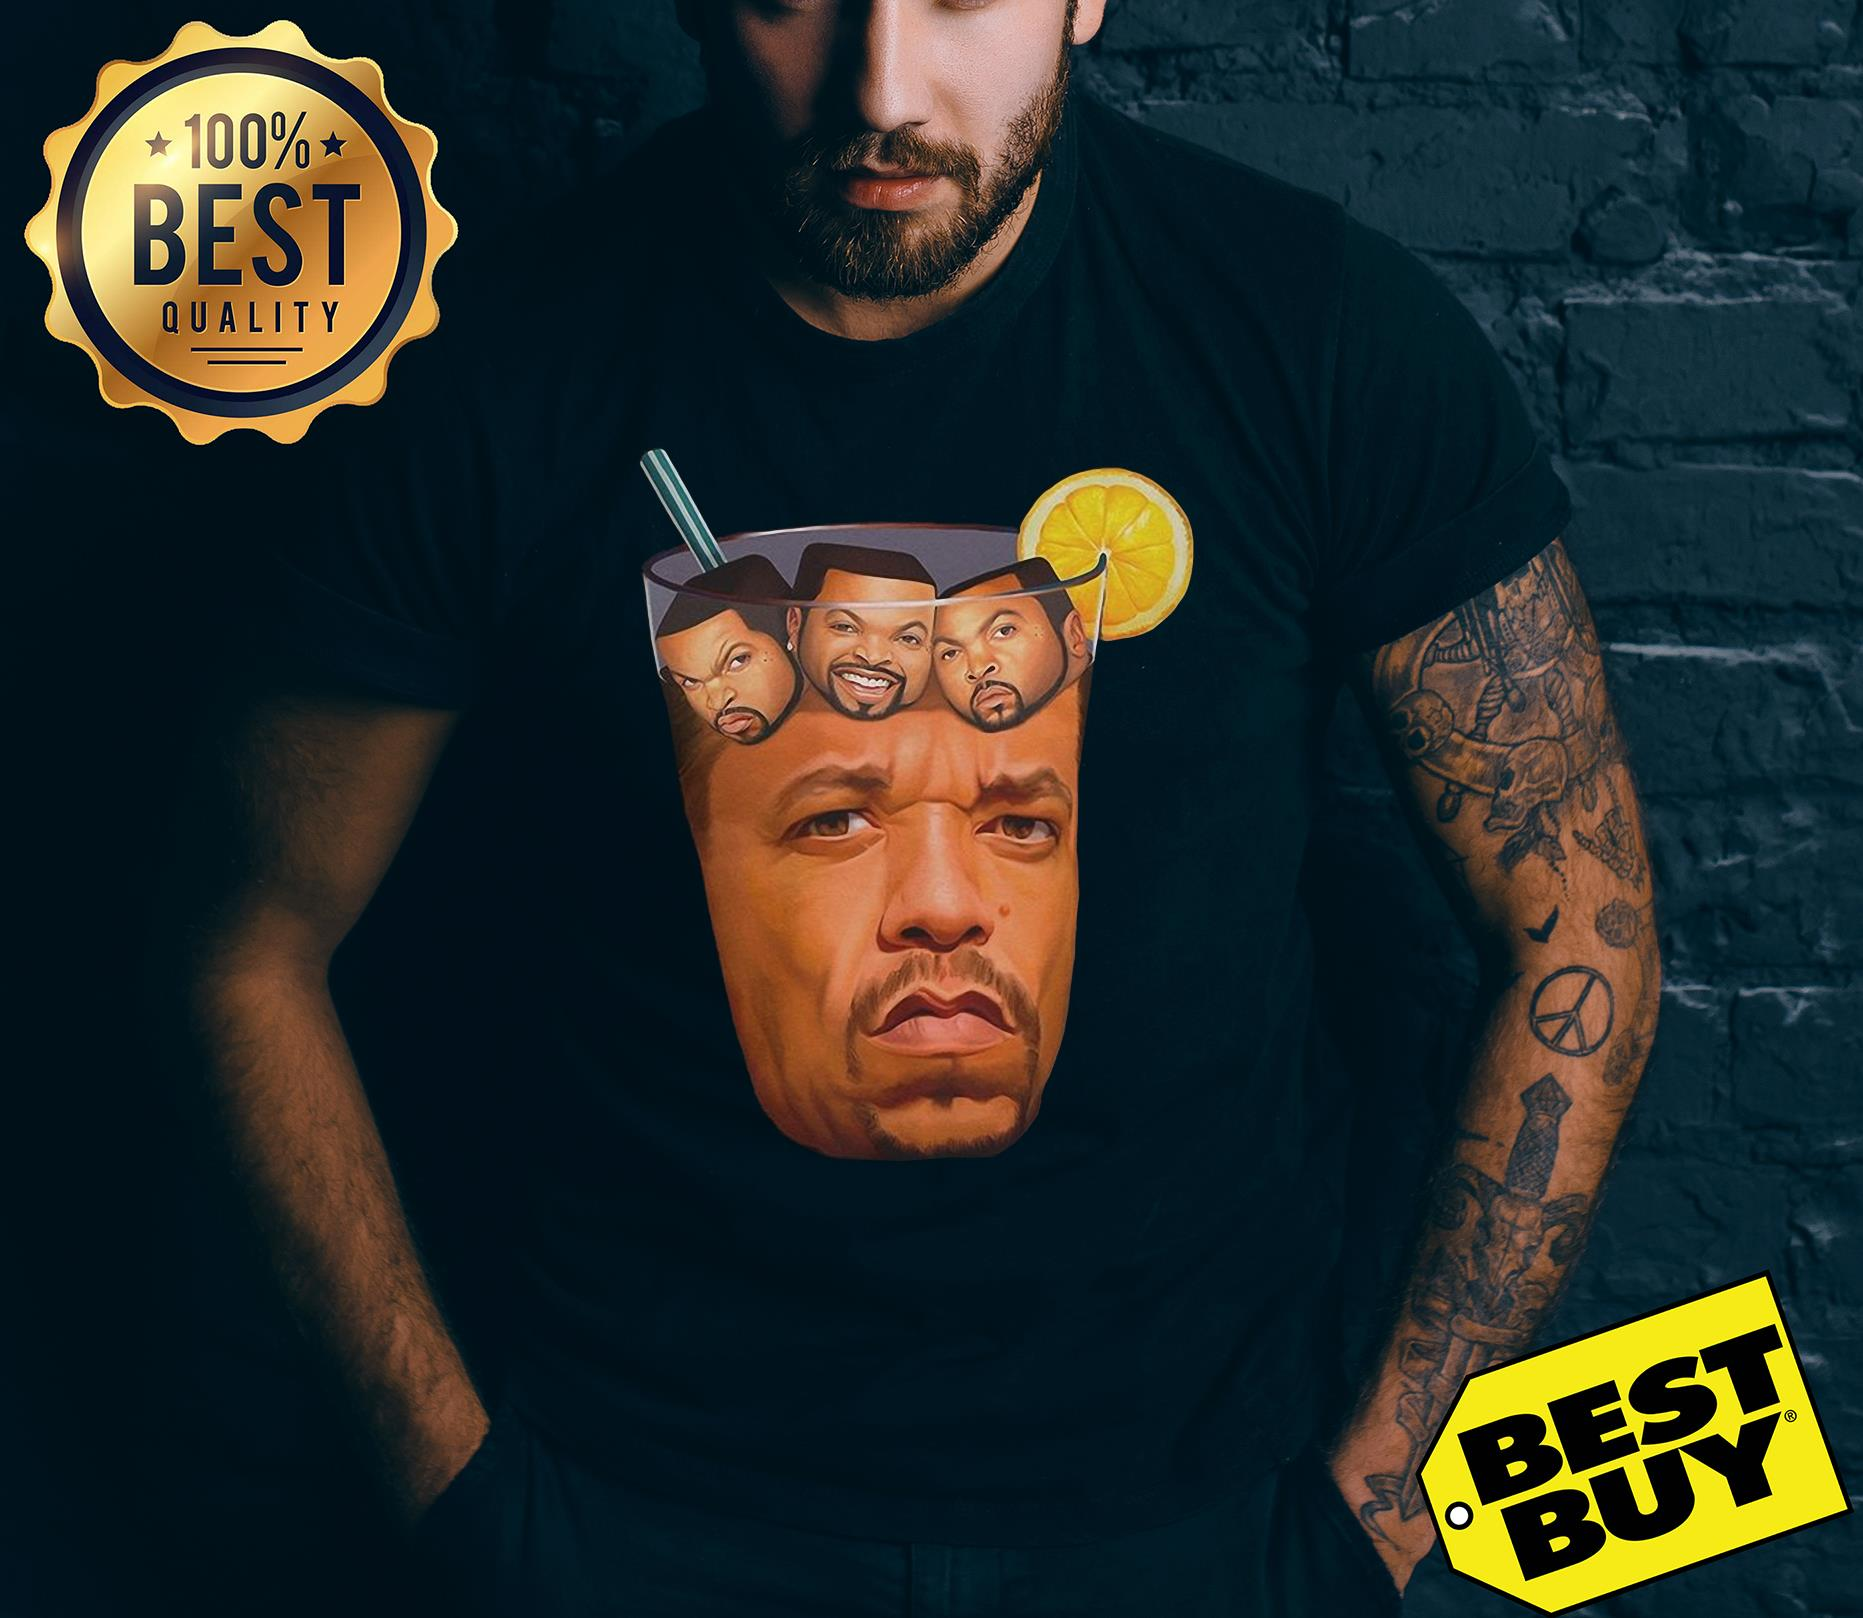 official ice t ice cube funny tank top 1 - Official Ice-T with Ice Cube funny shirt,  ladies tee, v-neck, tank top